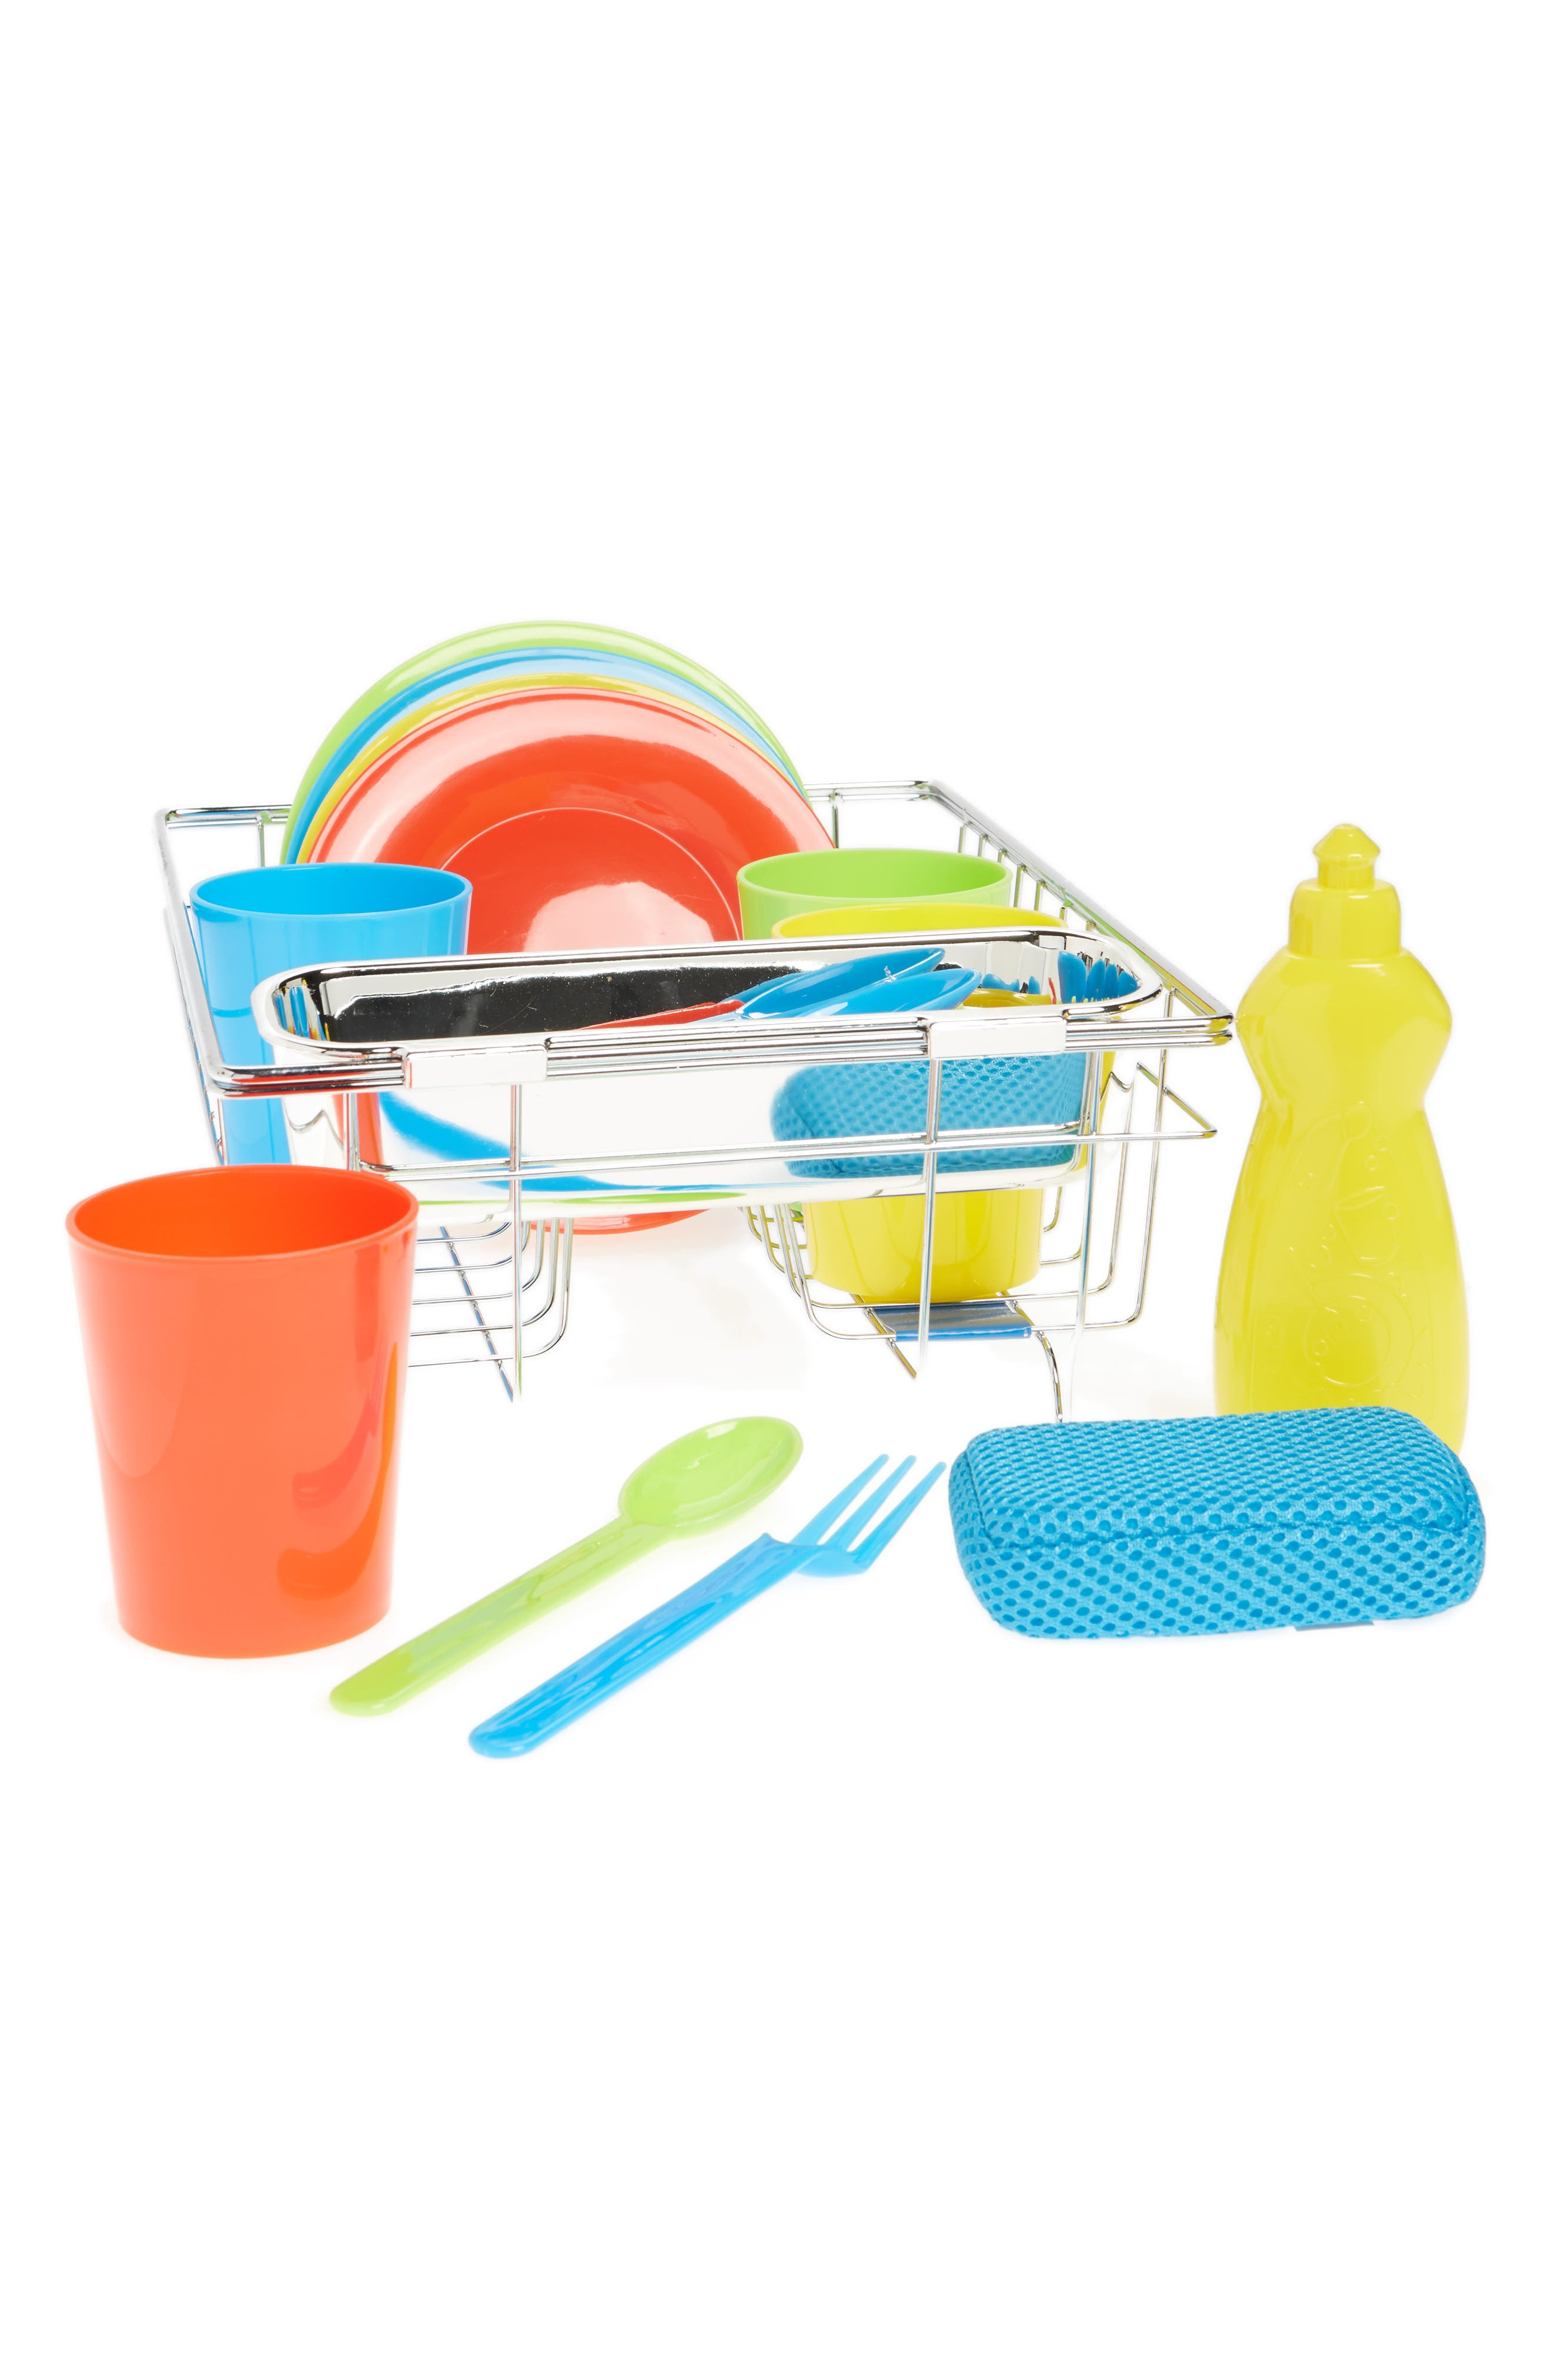 Wash & Dry Dish Set Toy,                         Main,                         color, 000